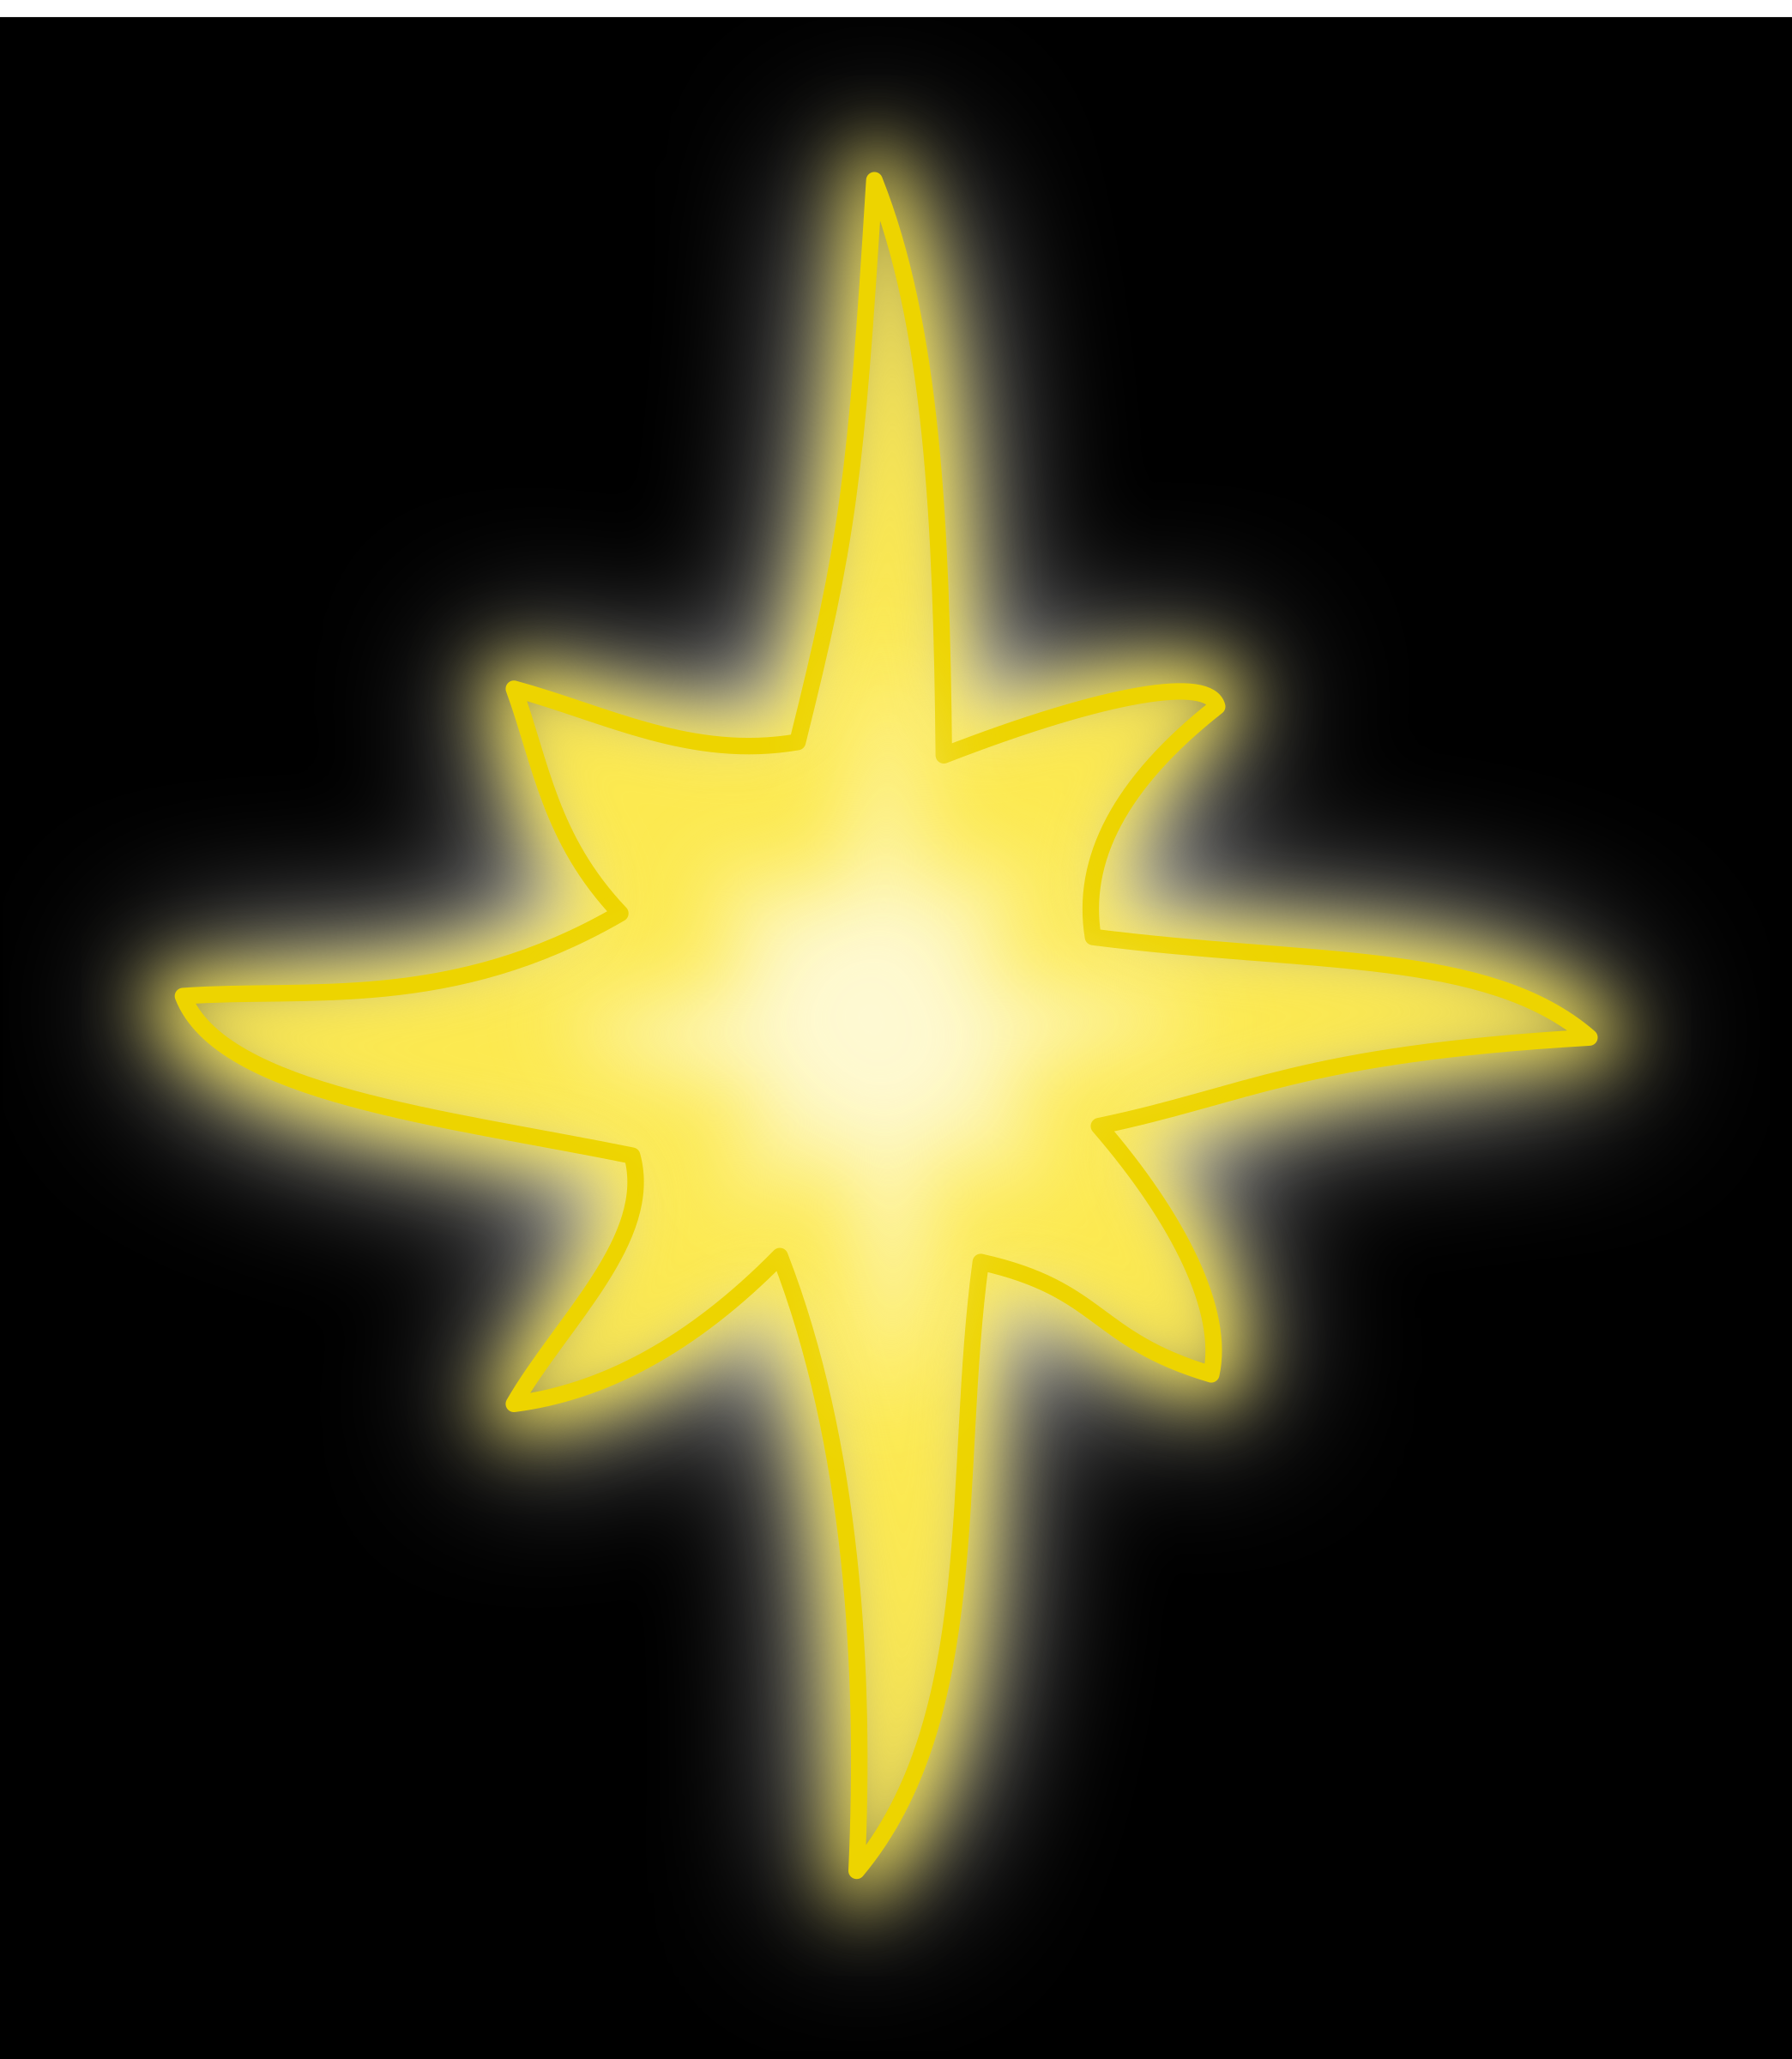 Bright Star by alexg